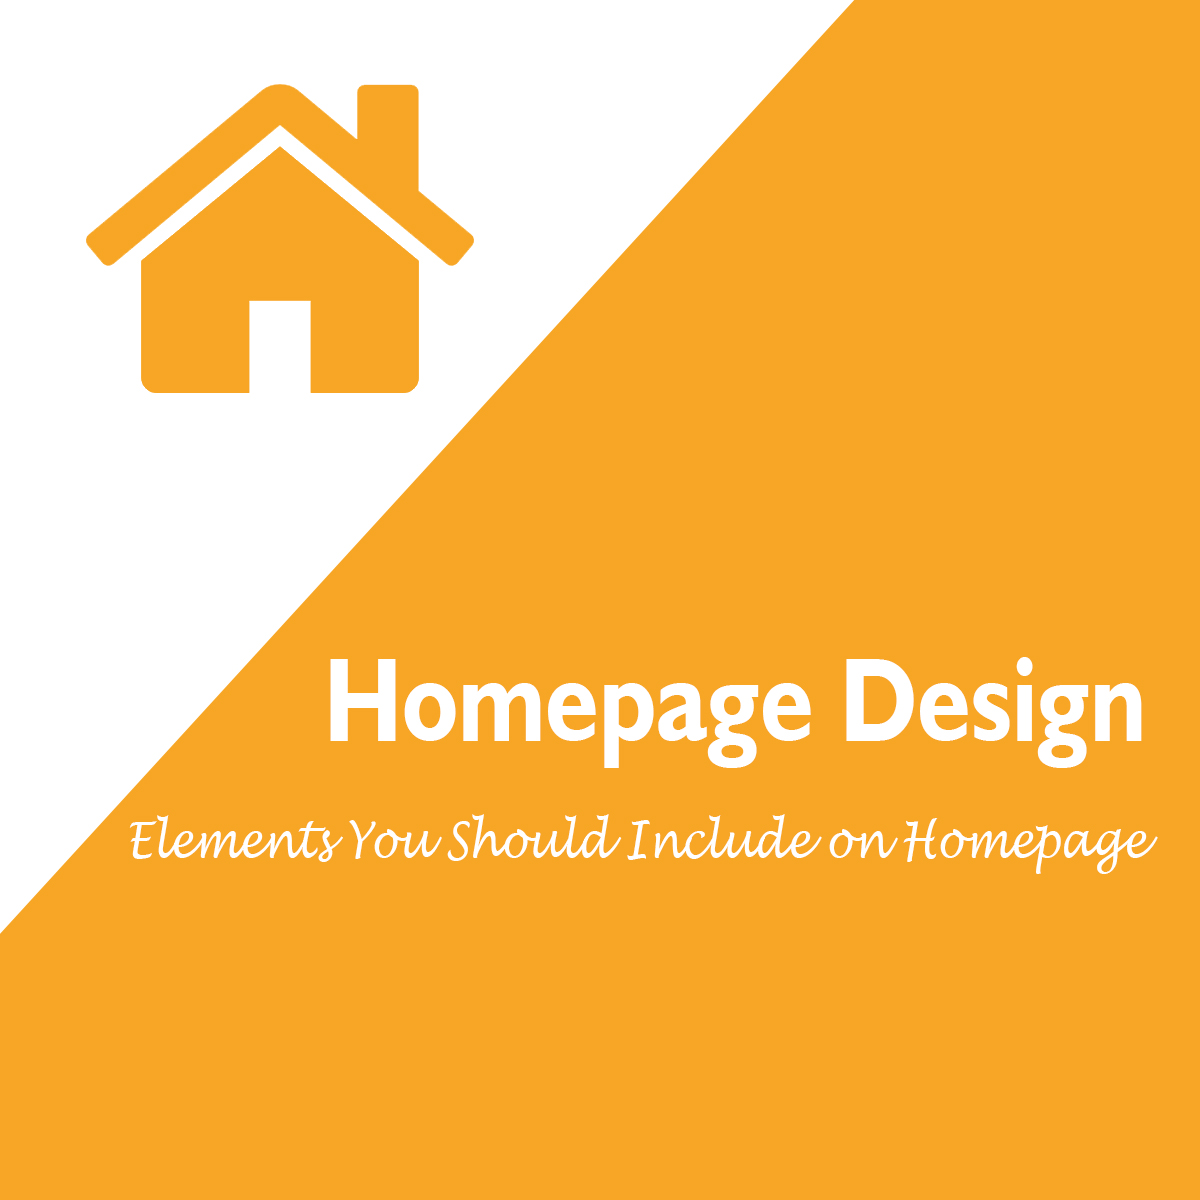 Homepage design - what should you include on your homepage